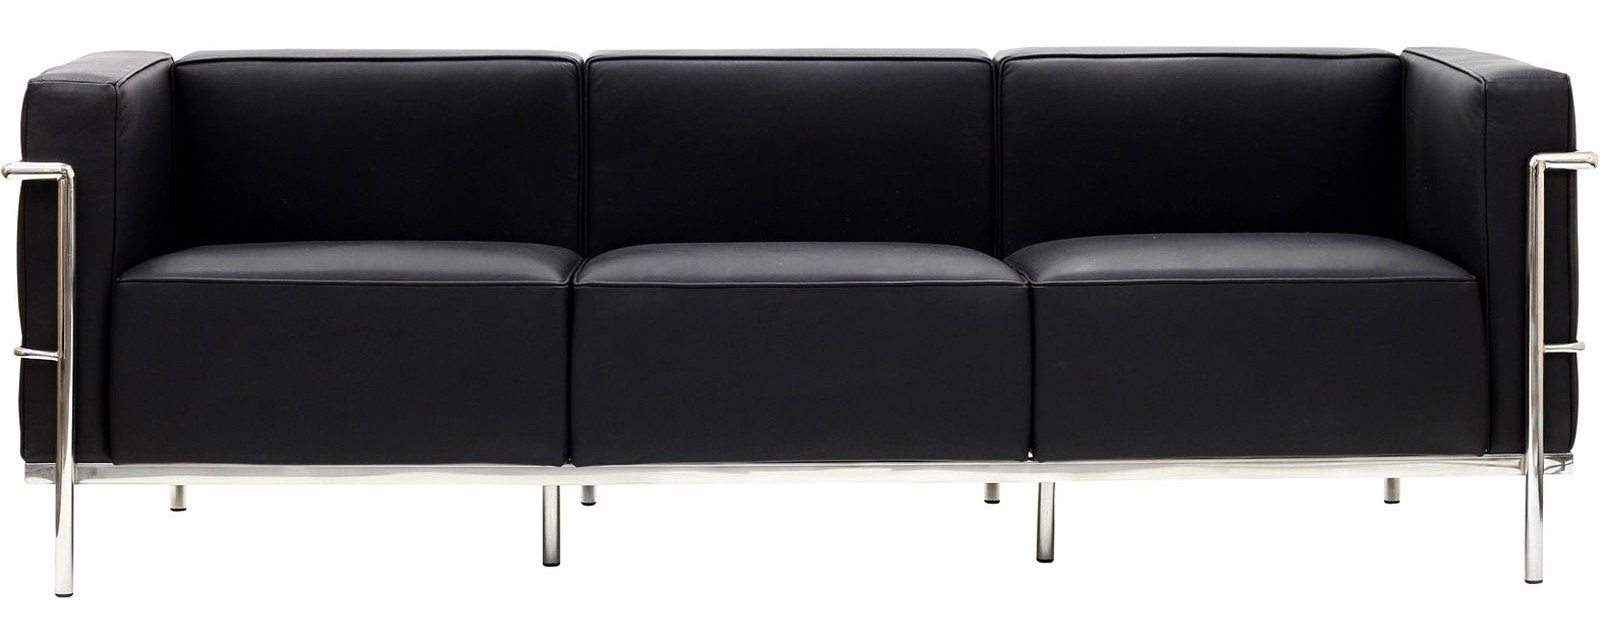 le corbusier lc3 sofa in genuine black leather from renegade eei 567 coleman furniture. Black Bedroom Furniture Sets. Home Design Ideas